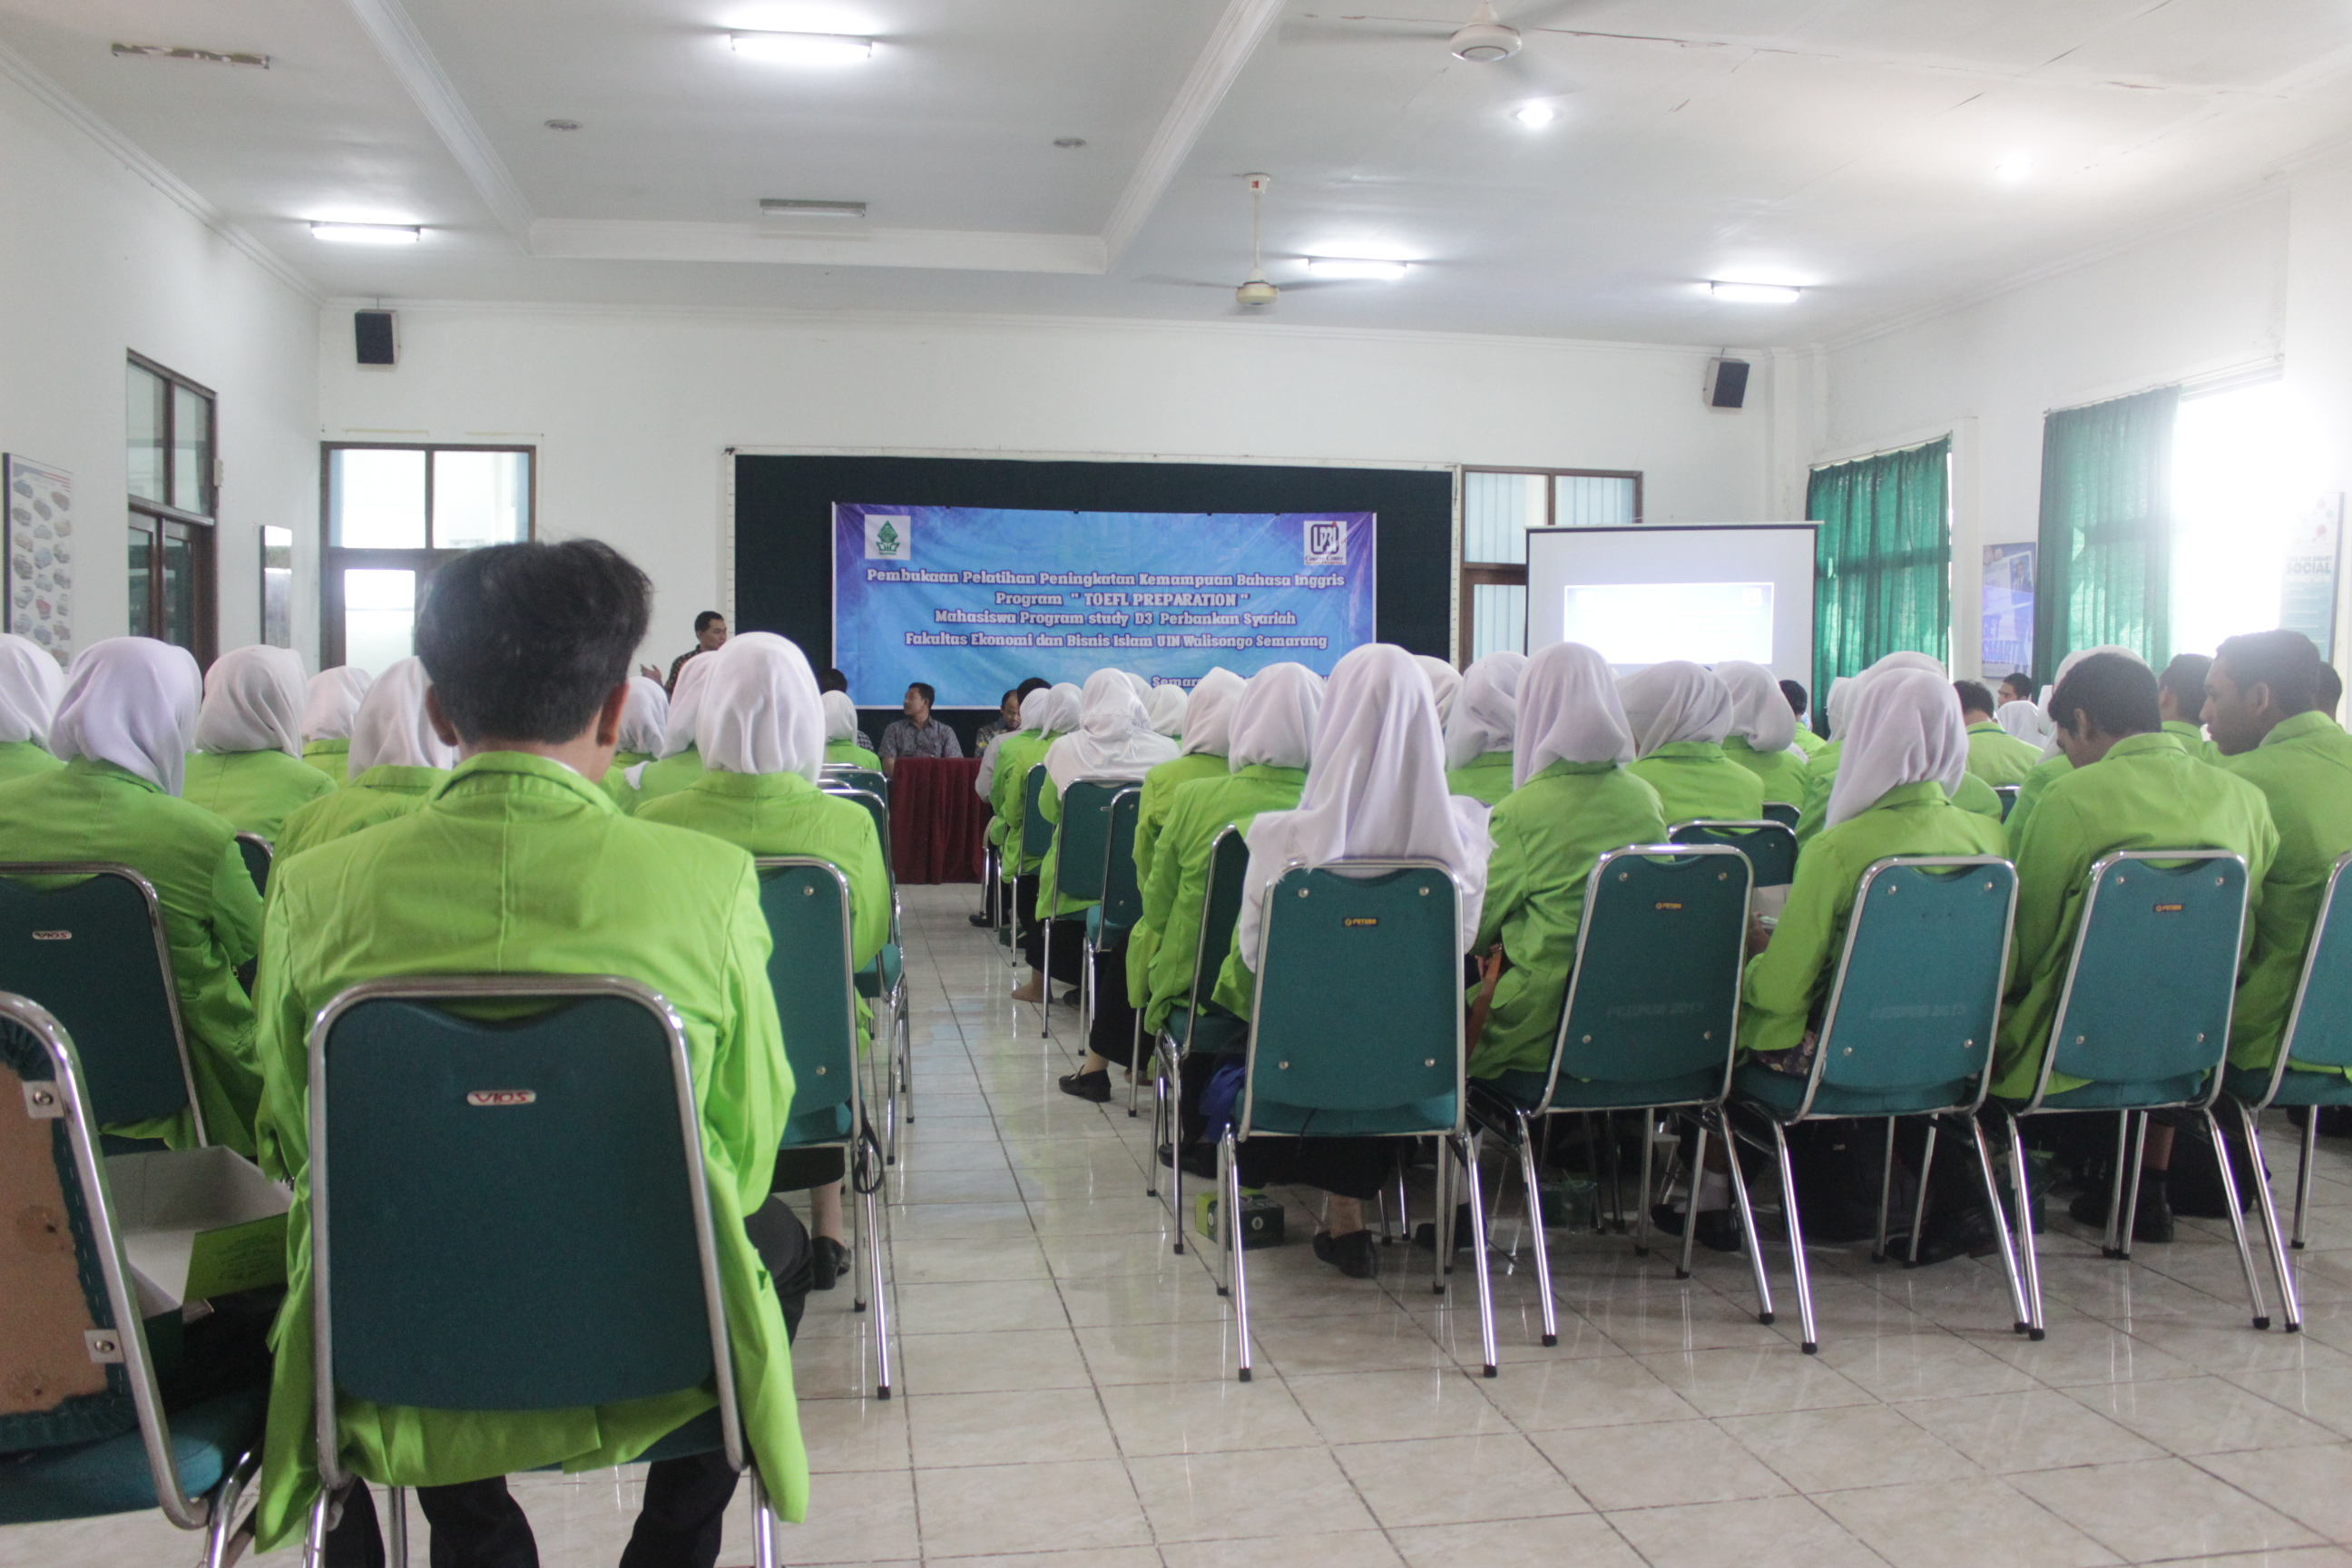 Prodi D3 Perbankan Syariah Bersama LP3I Course Center Menyelenggarakan  Program  TOEFL Preparationa Bagi Mahasiswa